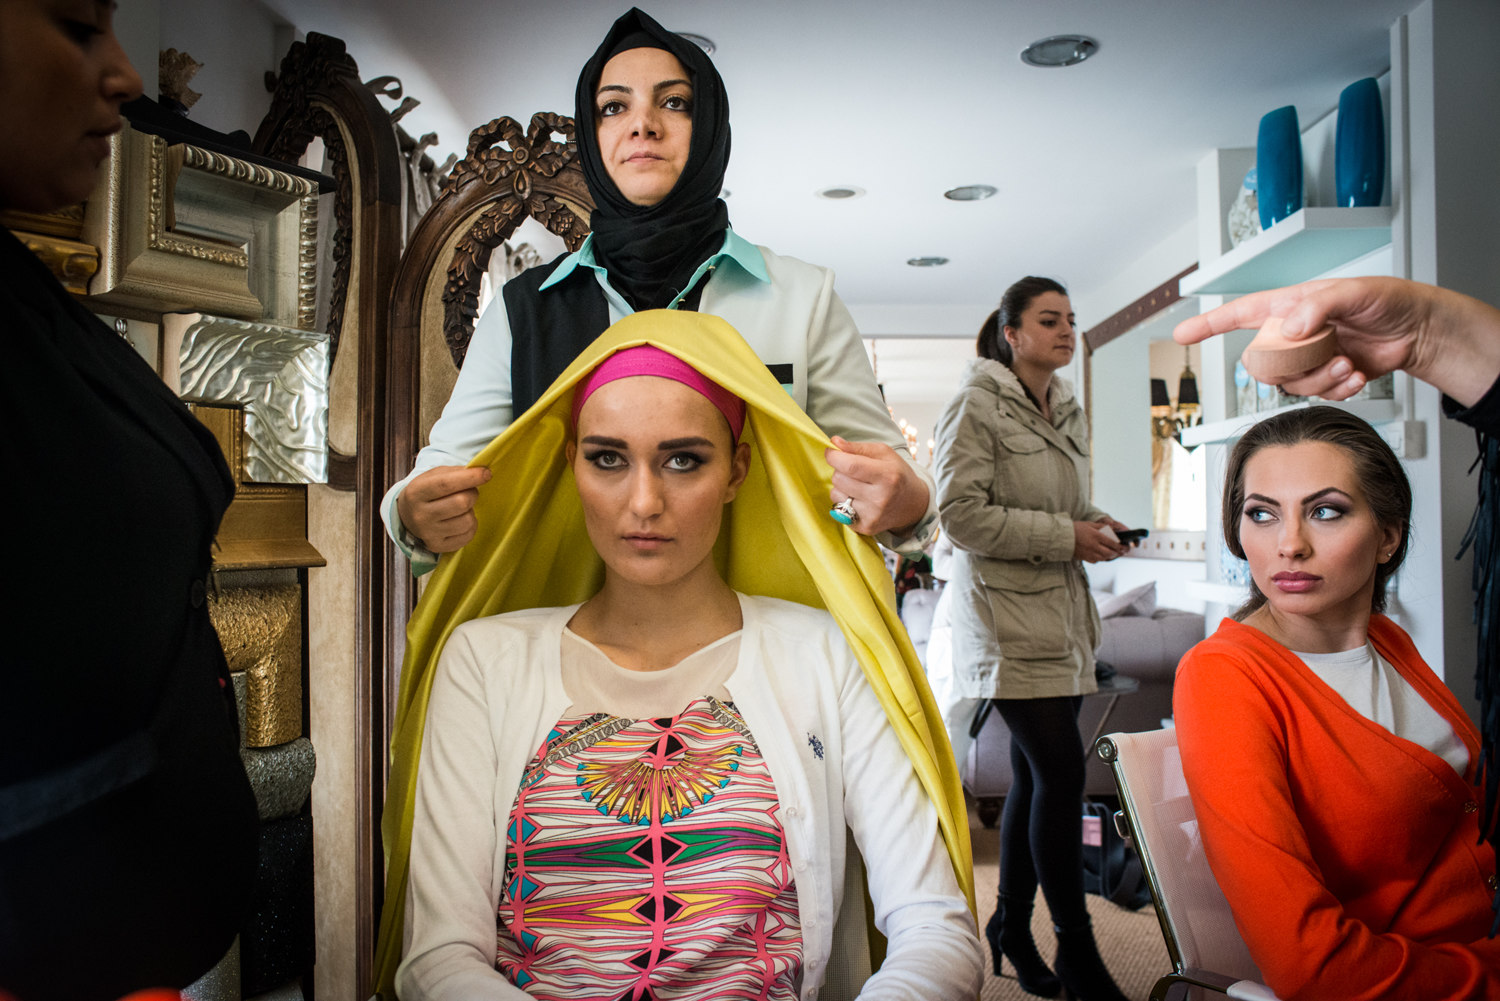 Models are made up before a shoot for ALA Magazine, the first magazine in Turkey for conservative women. Preparations include full make-up and headscarves- layered for a pop of color.